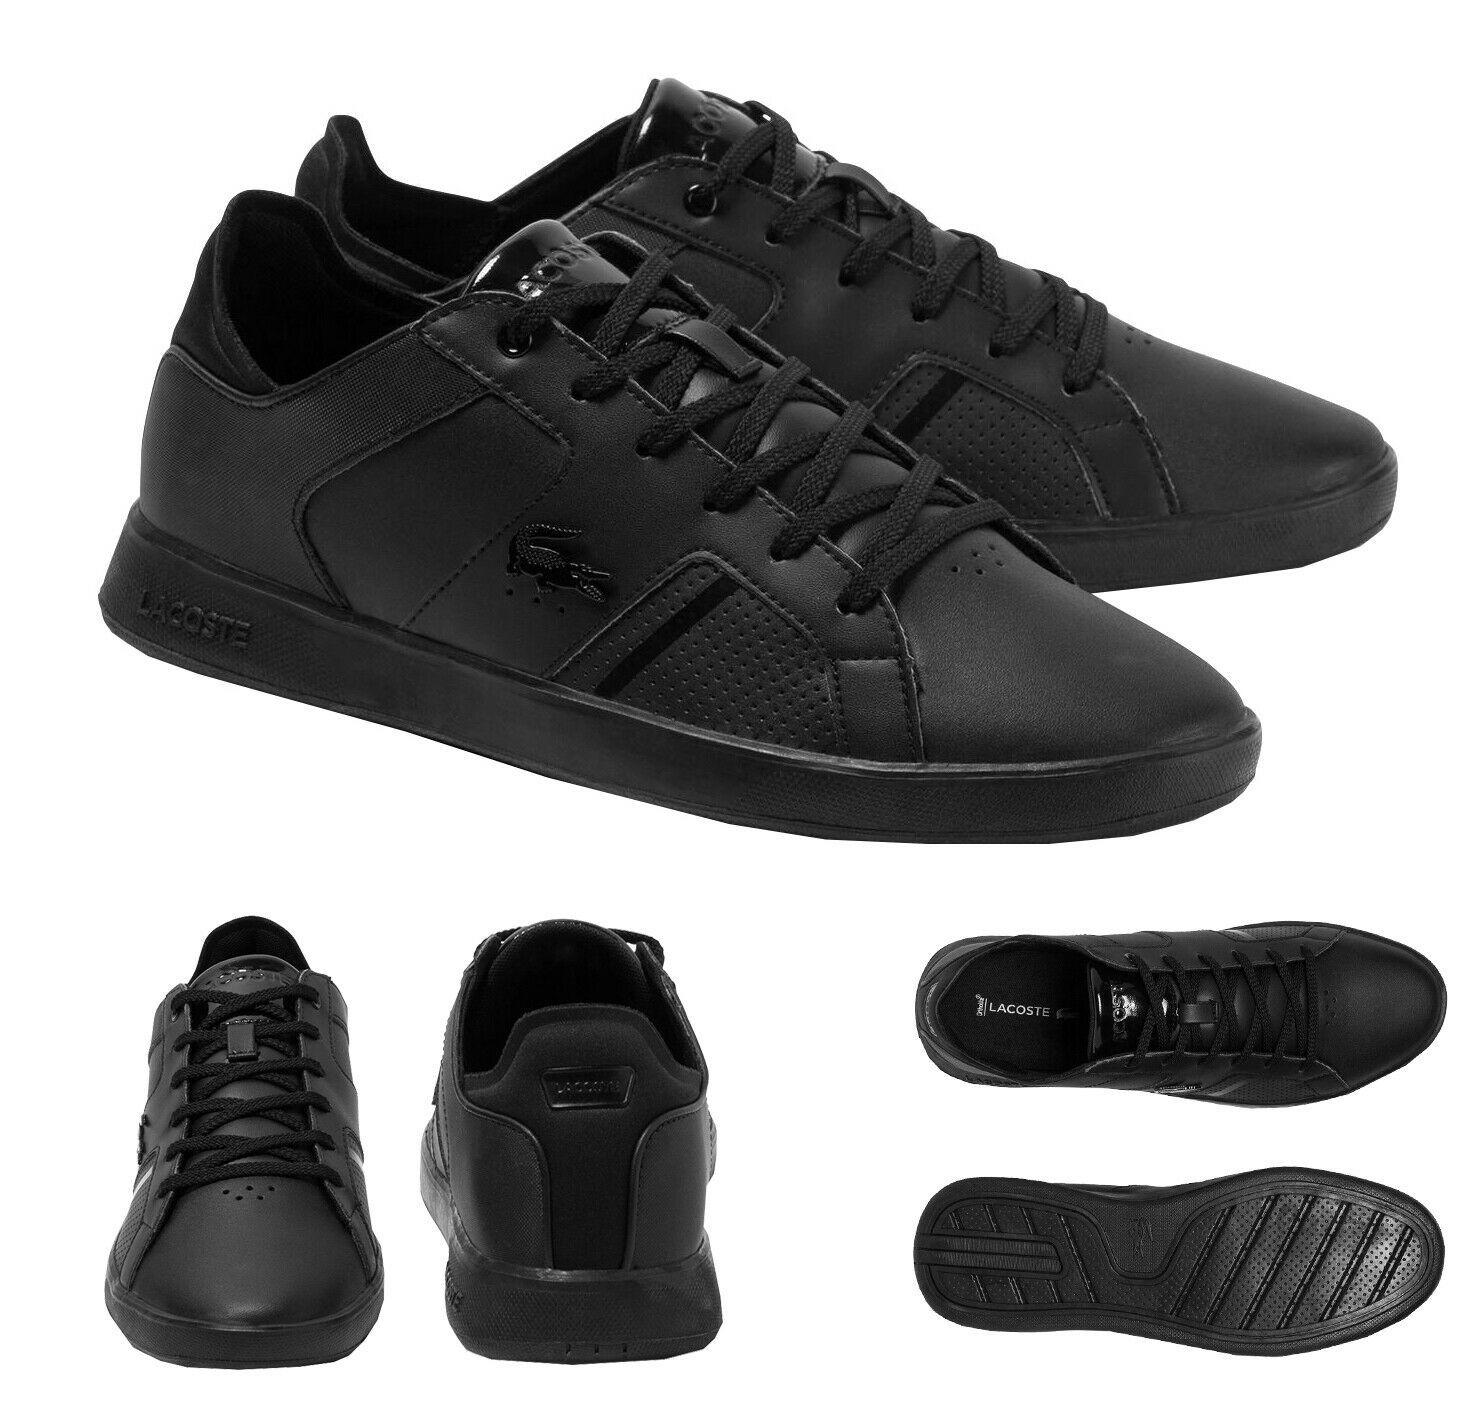 Lacoste Men's Casual Novas 120 3 SMA Athletic Shoes Leather Black Sneaker